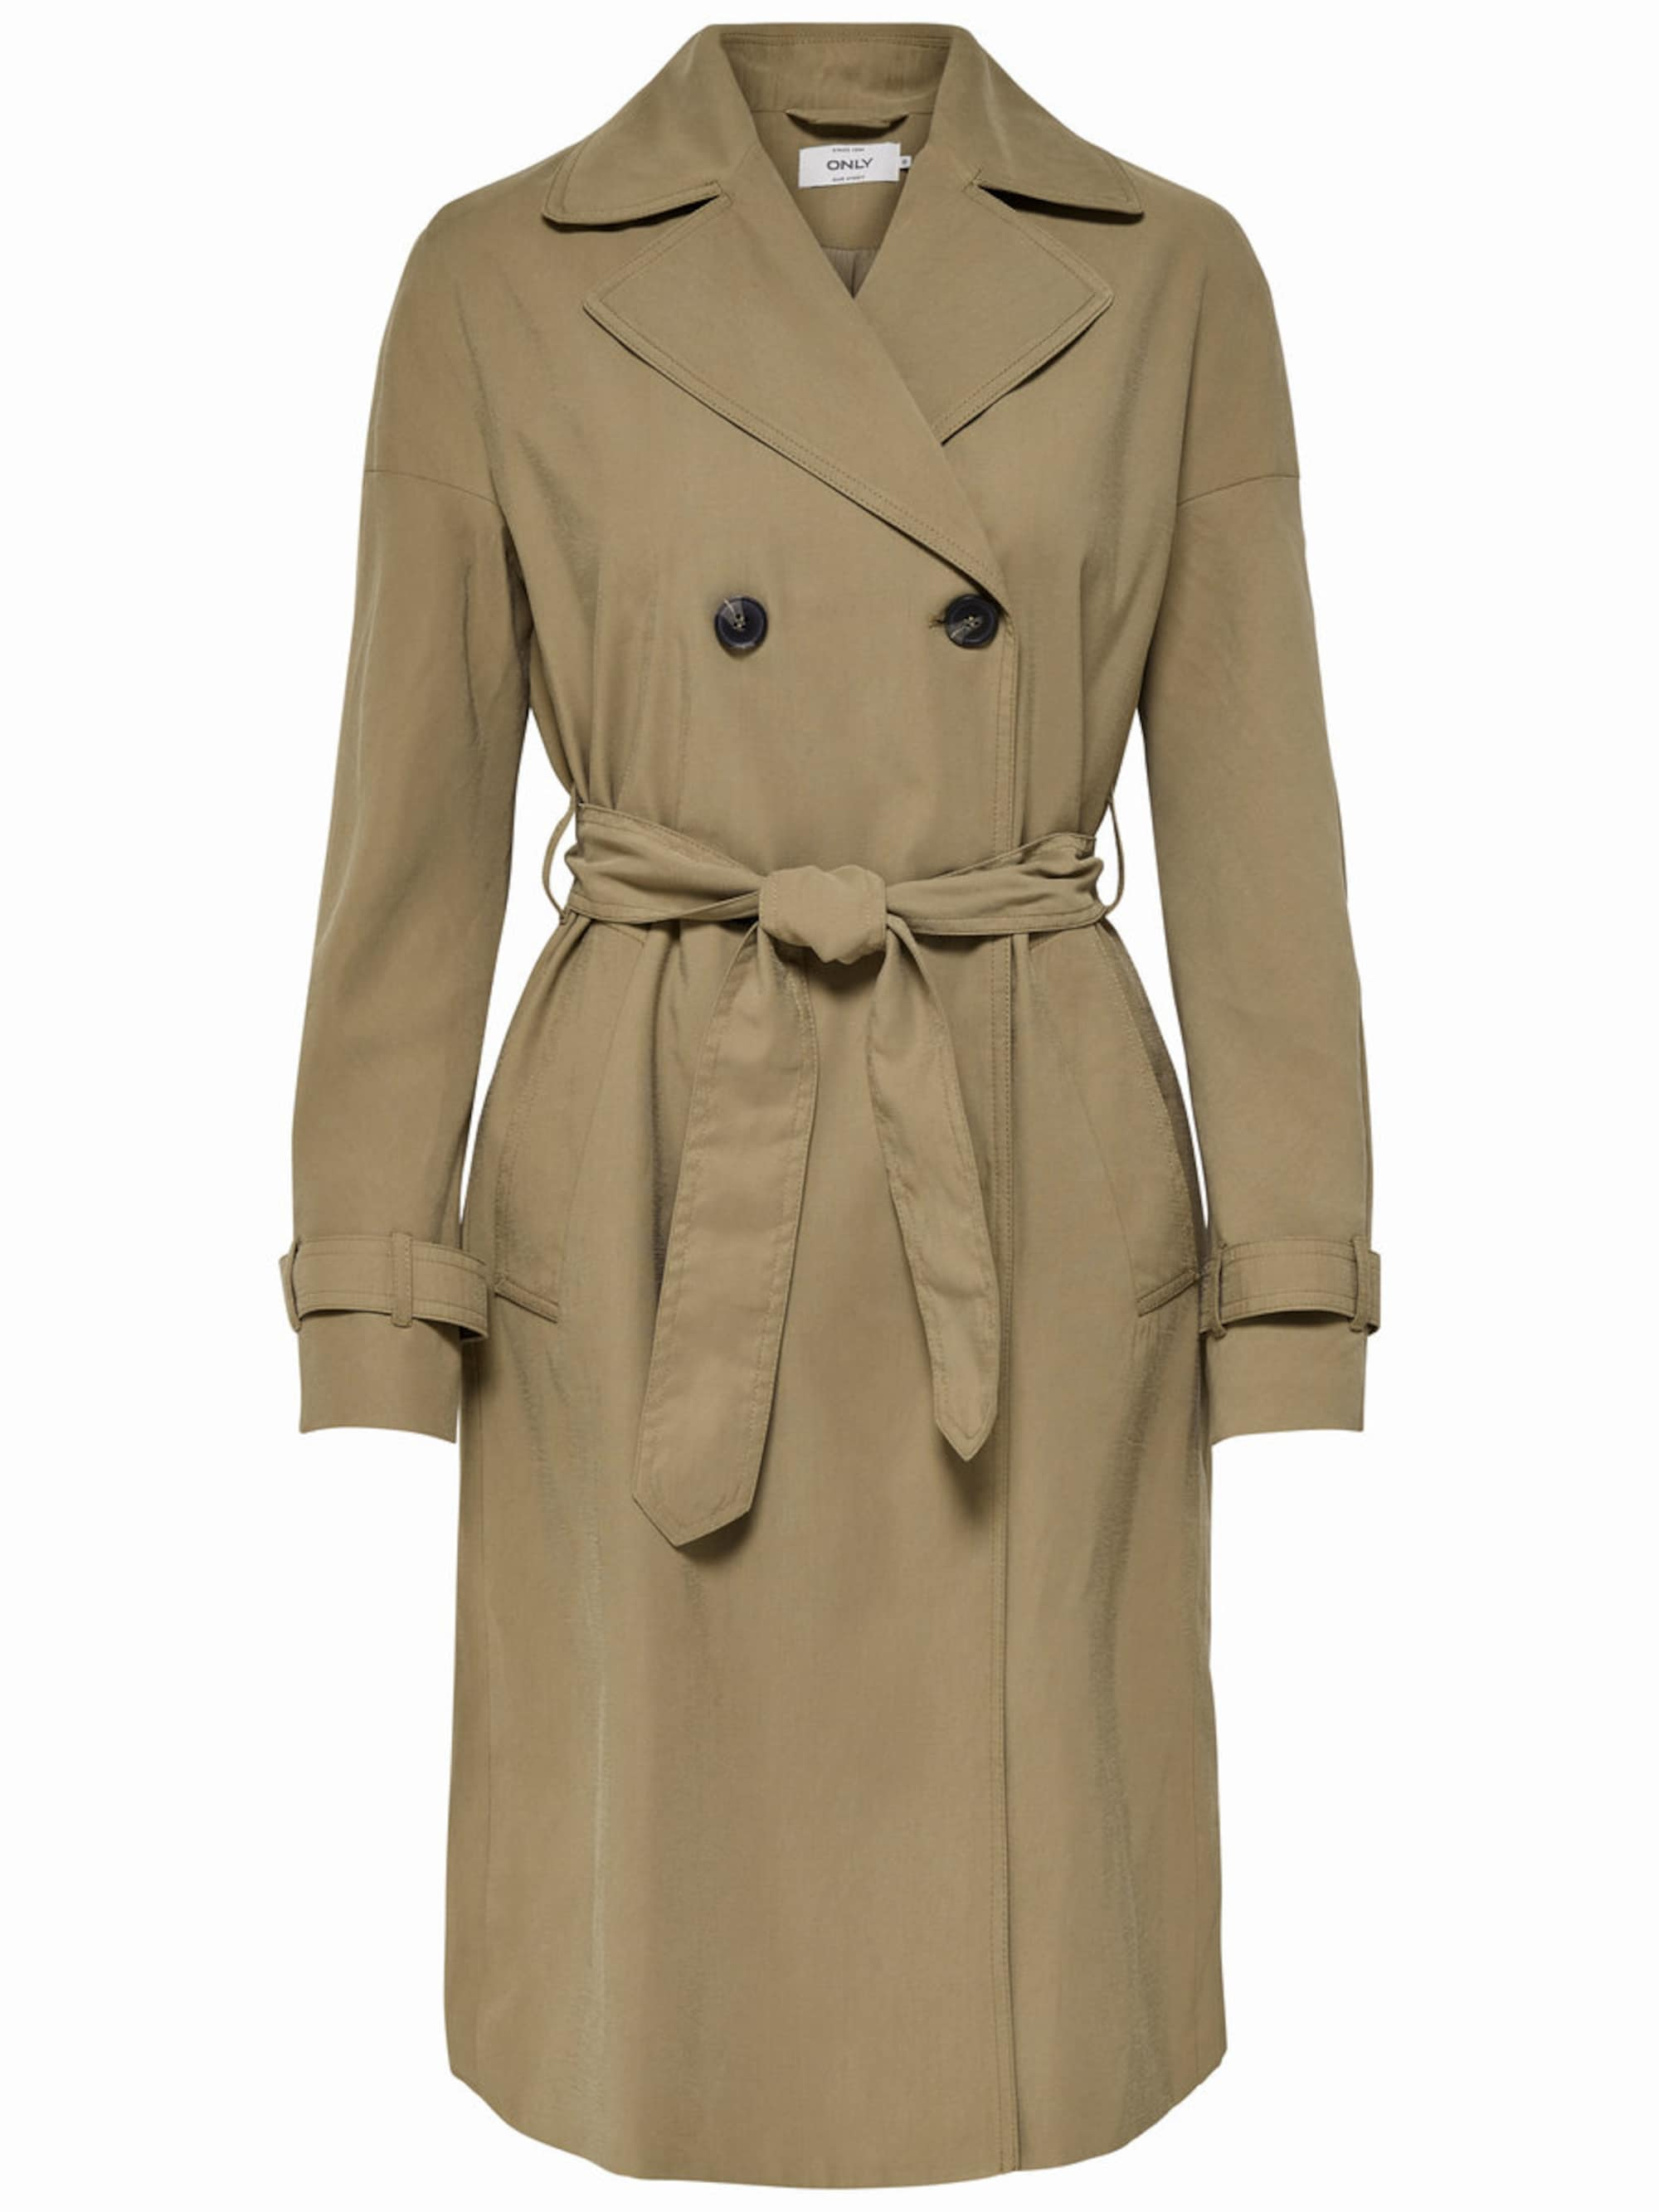 only - Einfarbiger Trenchcoat